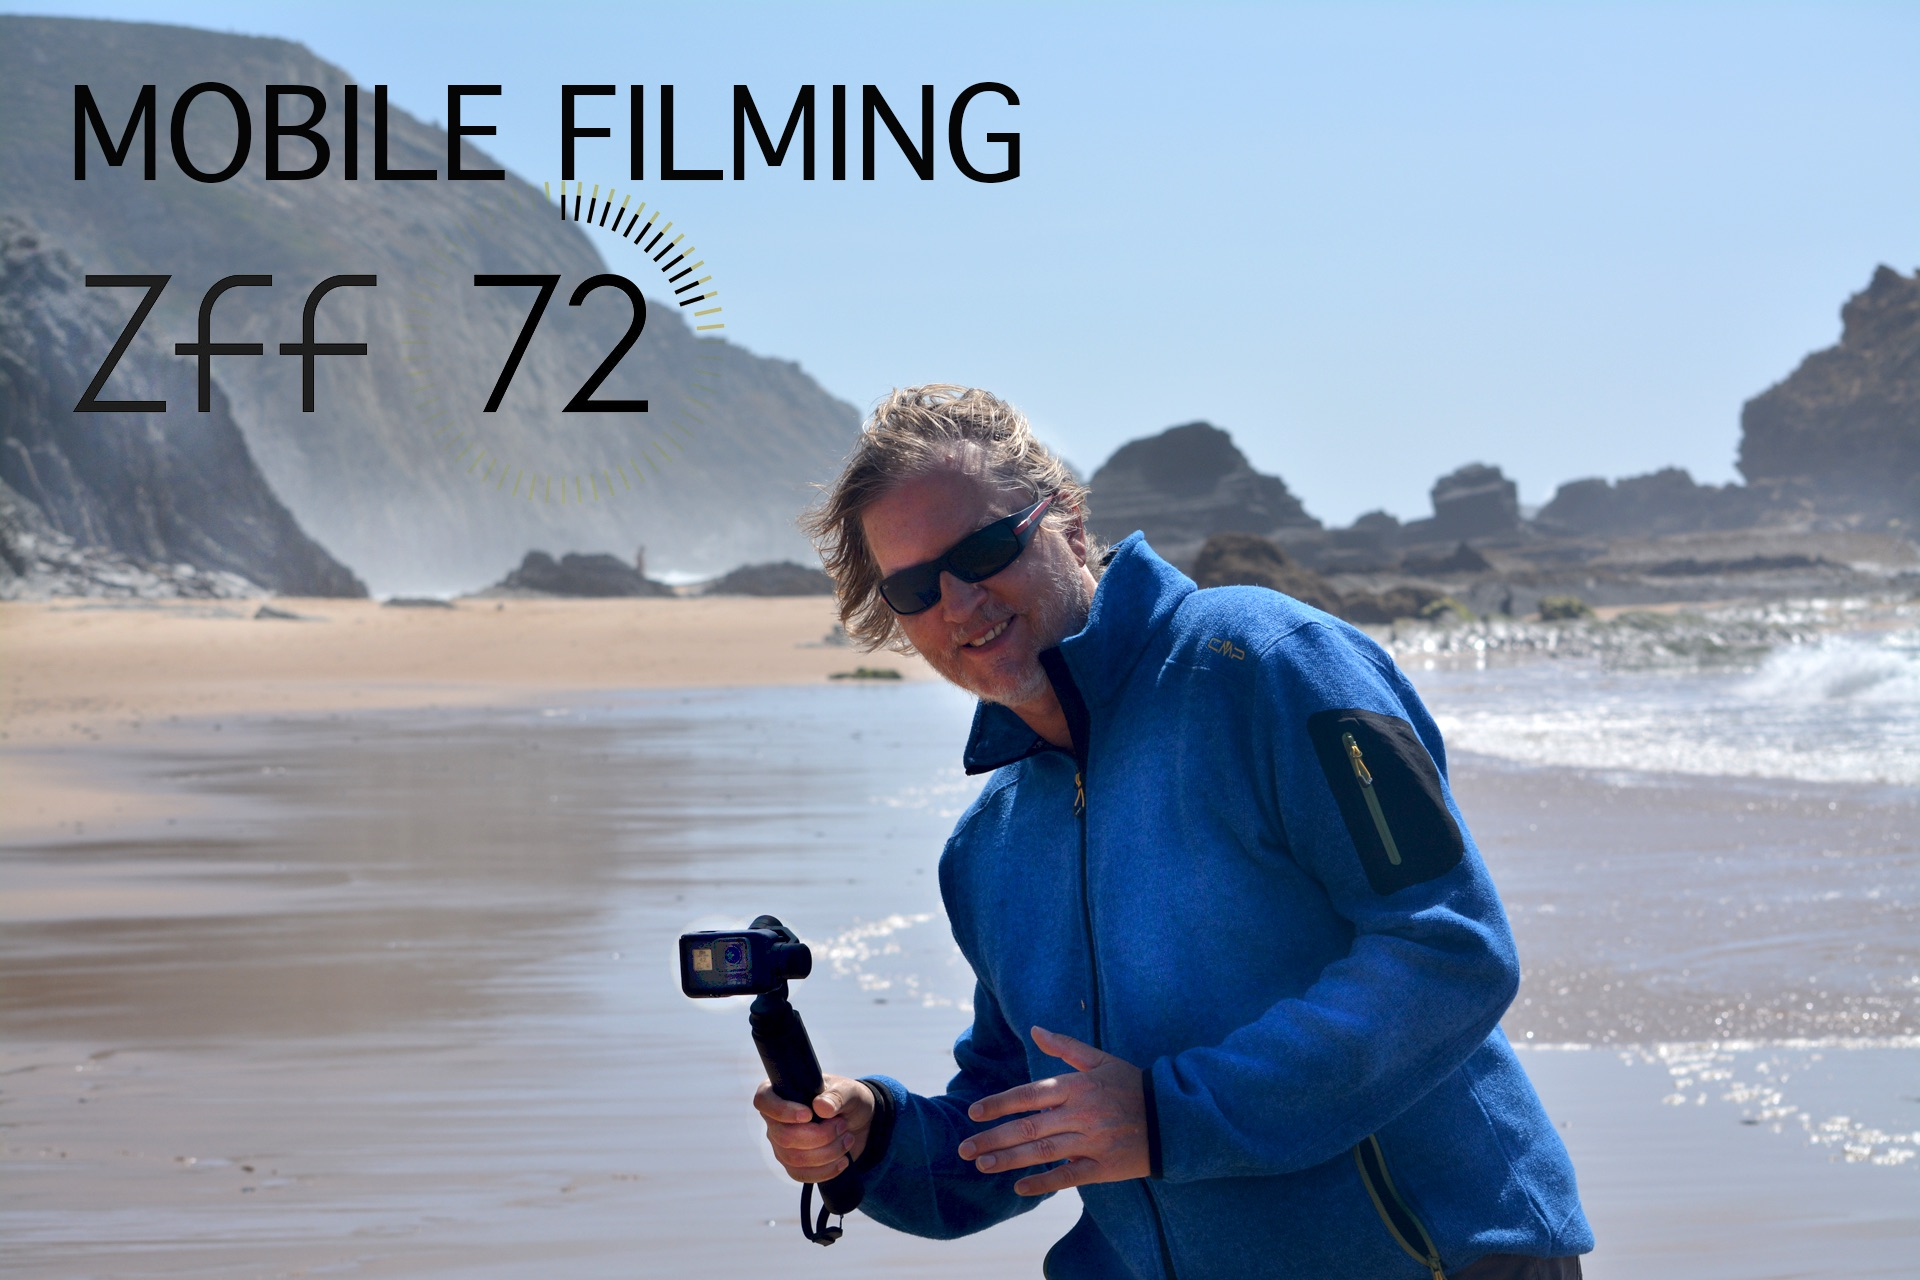 Mobile Filming ZFF72 (Frank Luchs)